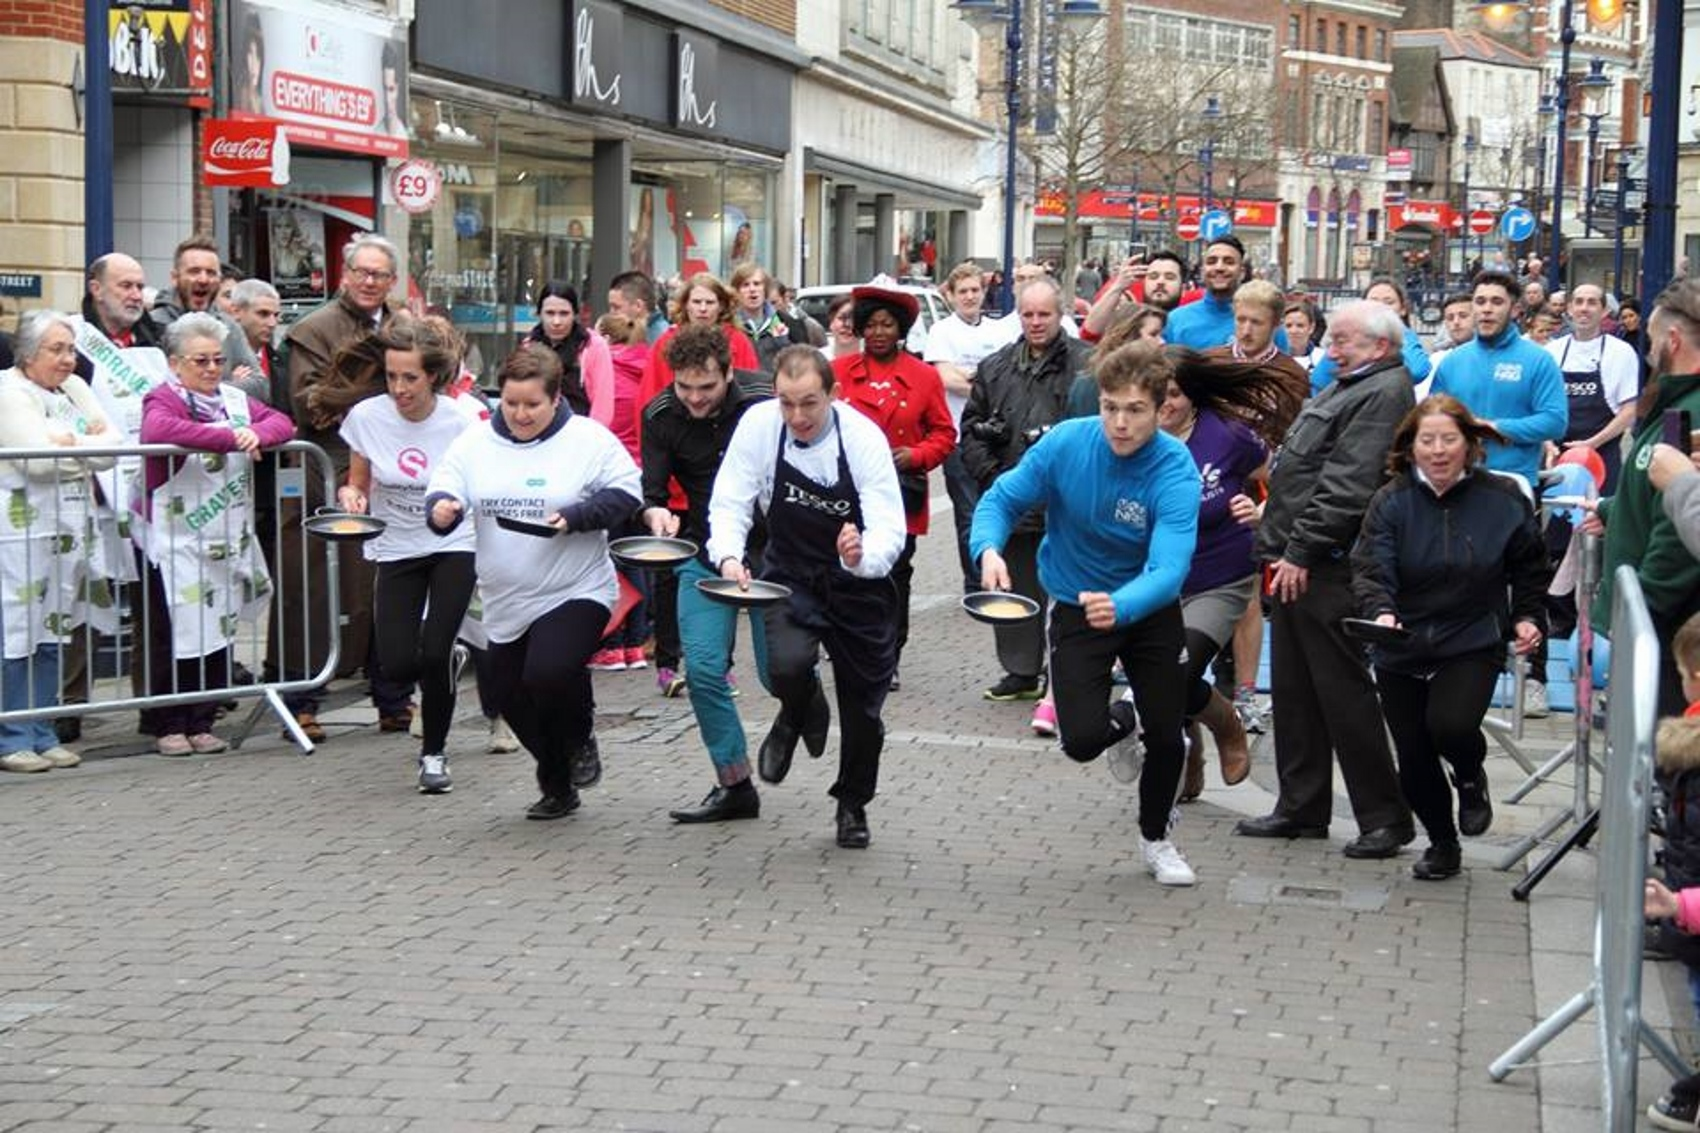 Specsavers Gravesend staff taking part in the charity pancake run